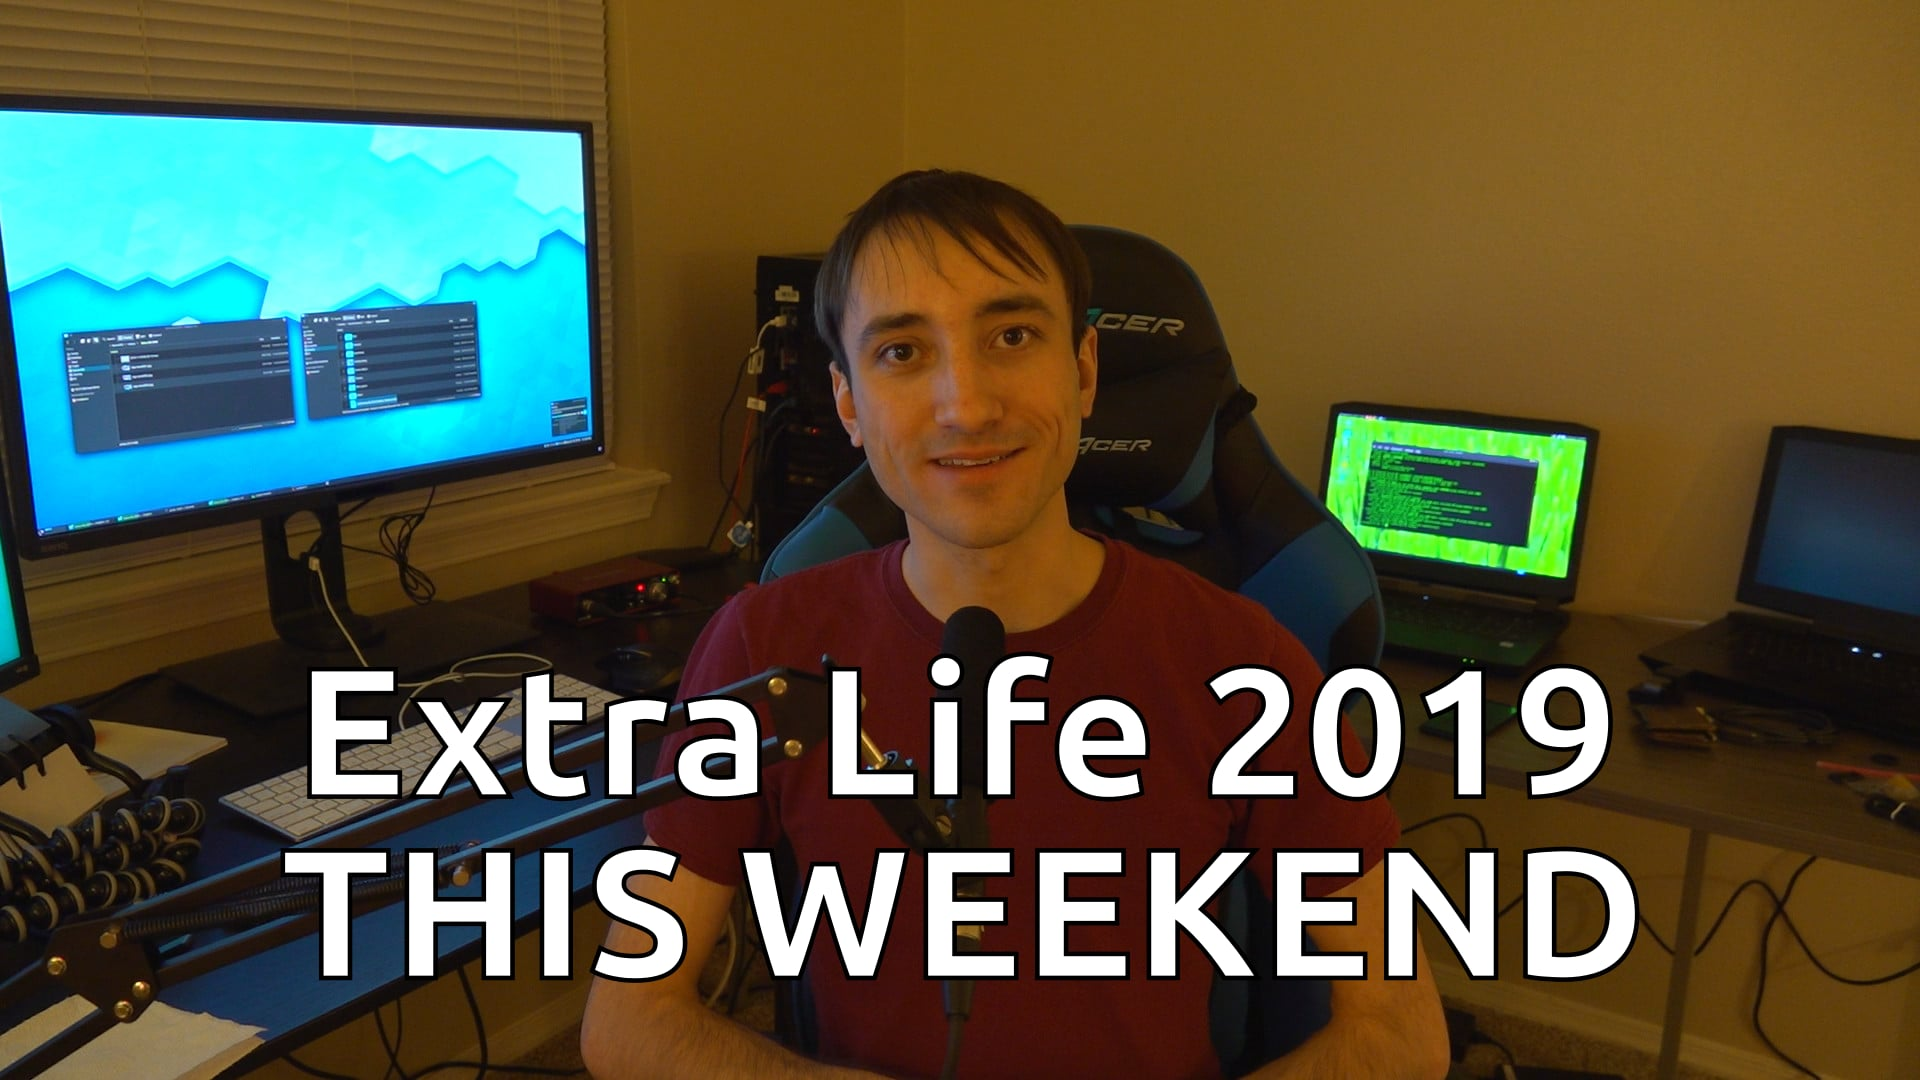 Tune In to Extra Life 2019 This Weekend!